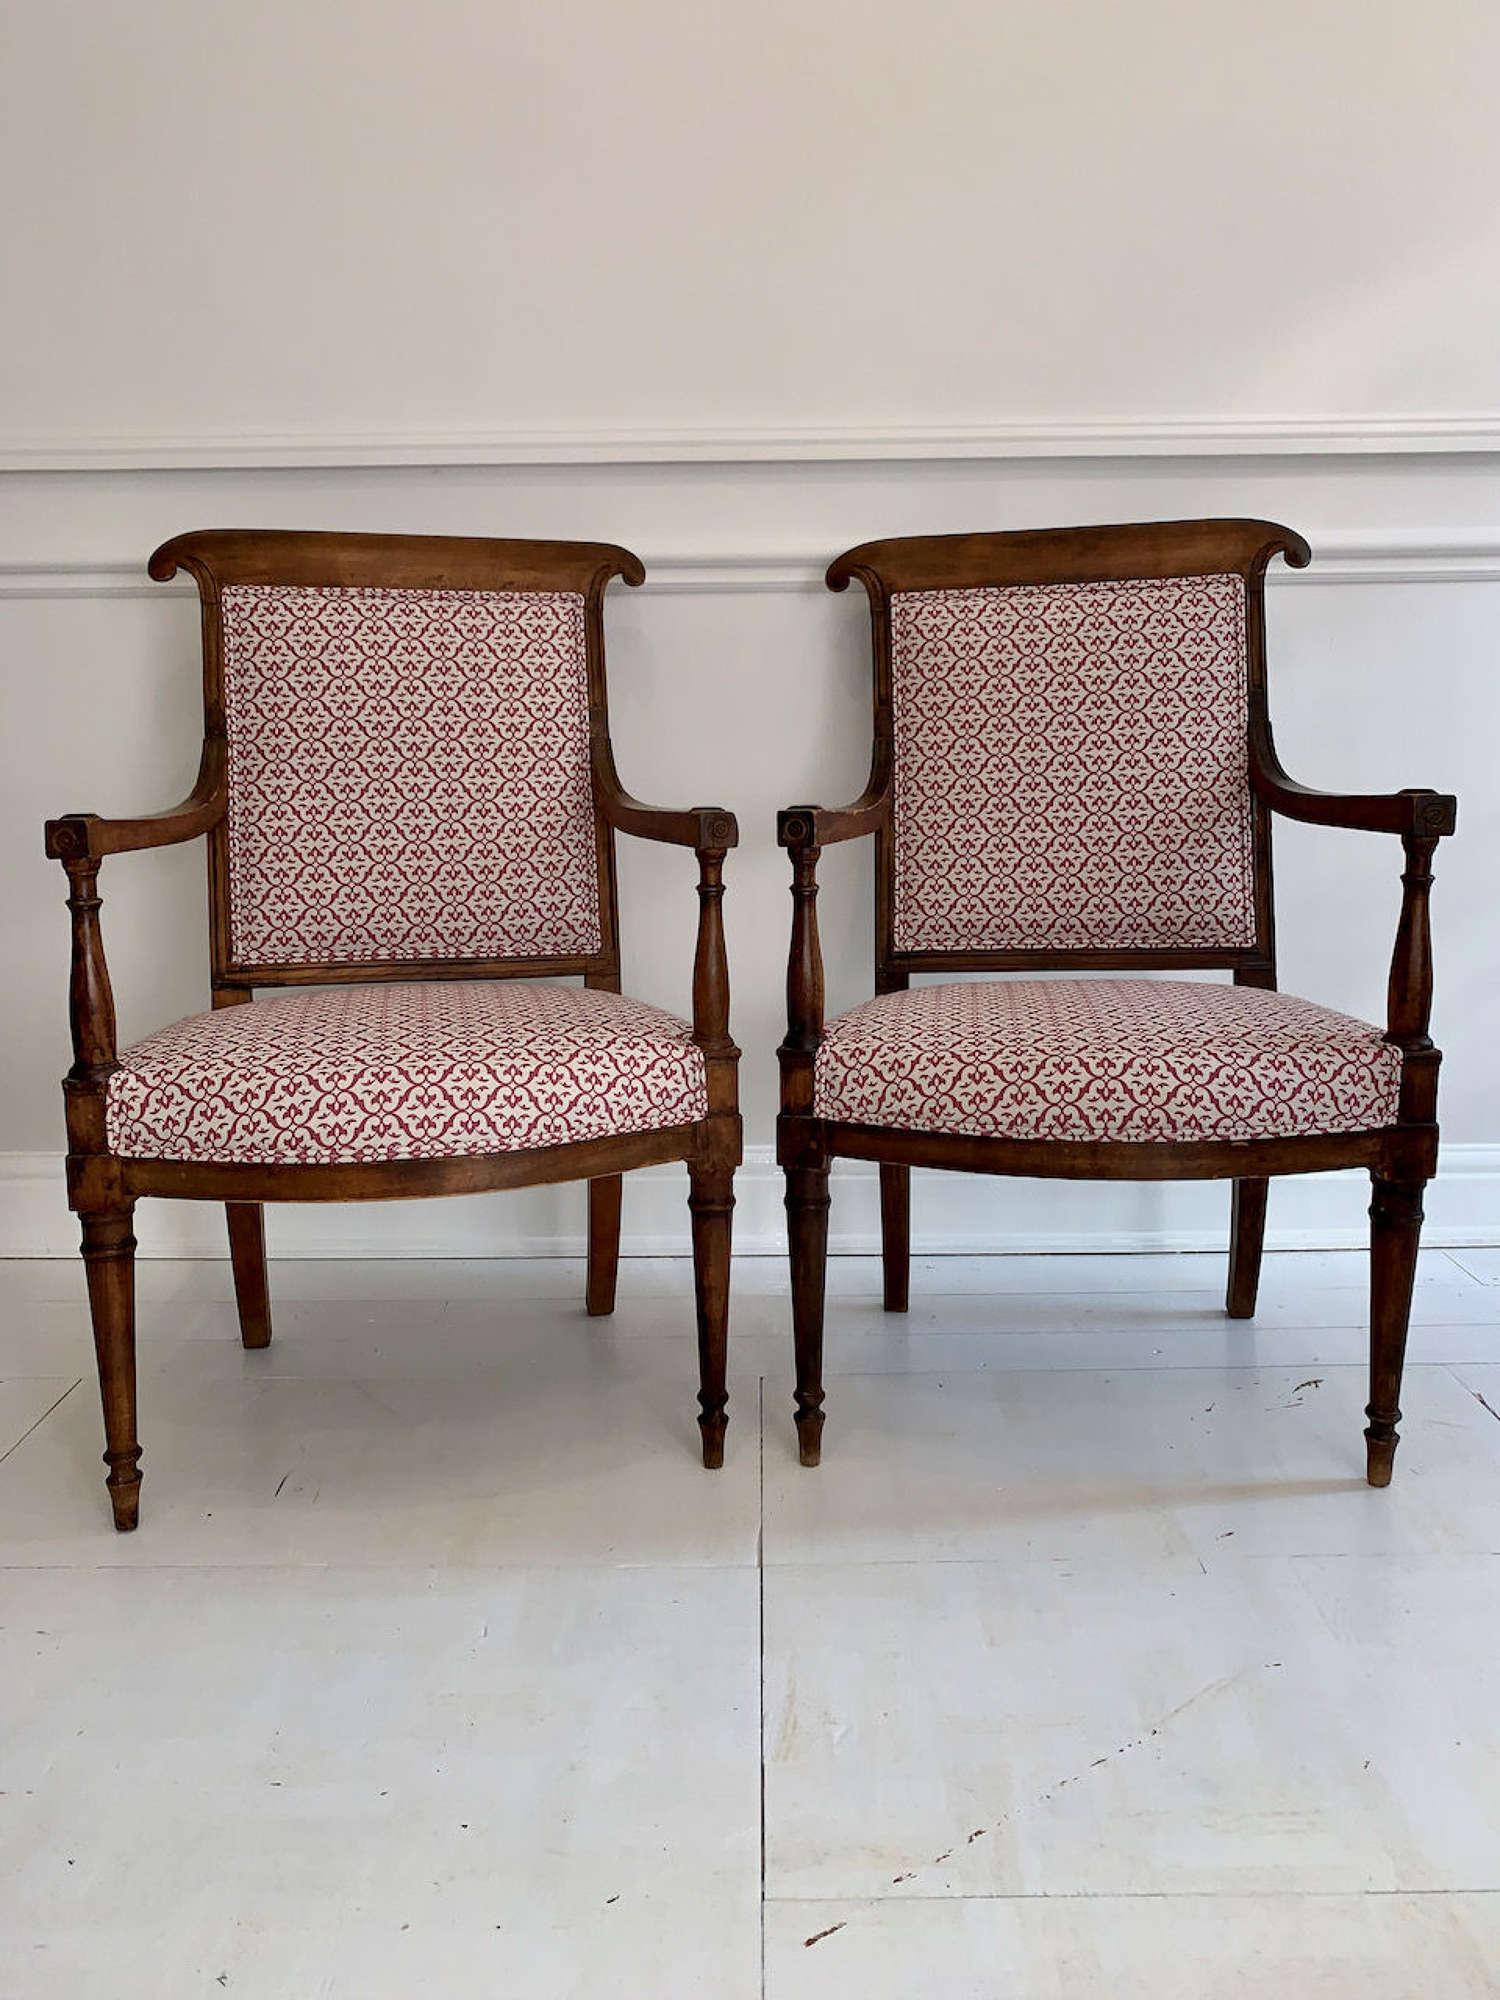 A pair of French Directoire chairs